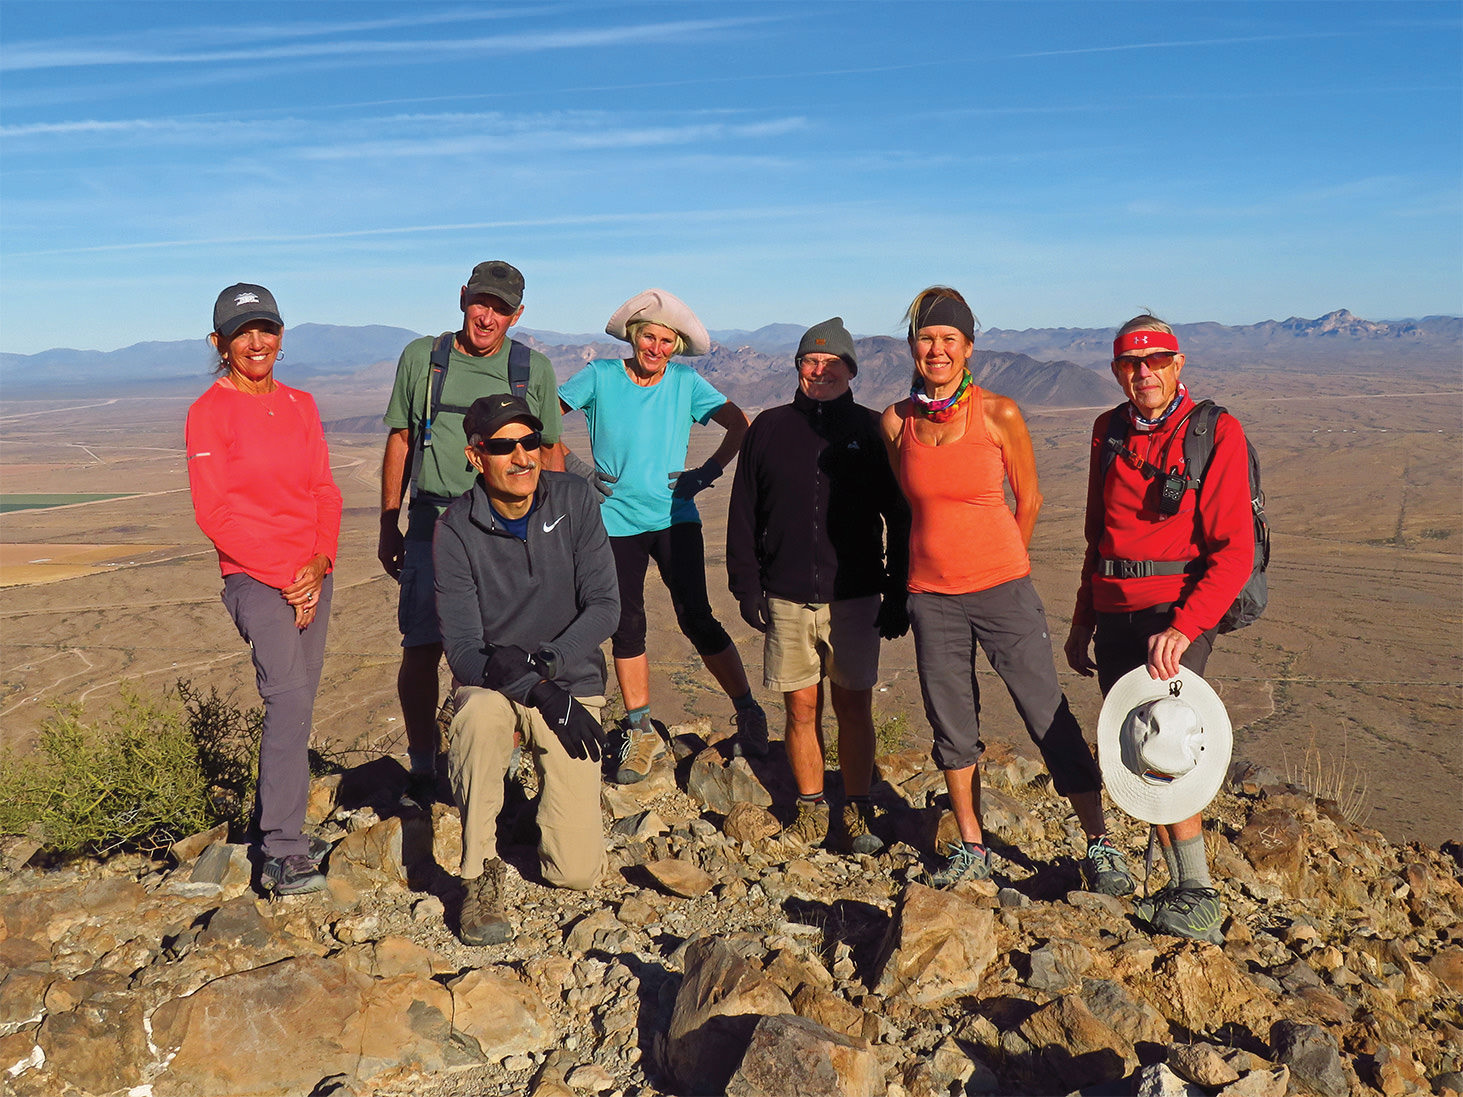 Left to right: Marilyn Reynolds, Clare Bangs, Mike Tansey, Eileen Lords-Mosse, Neal Wring, Kris Raczkiewicz, and Lynn Warren (photographer) enjoying 360-degree views from the summit of Saddle Mountain.